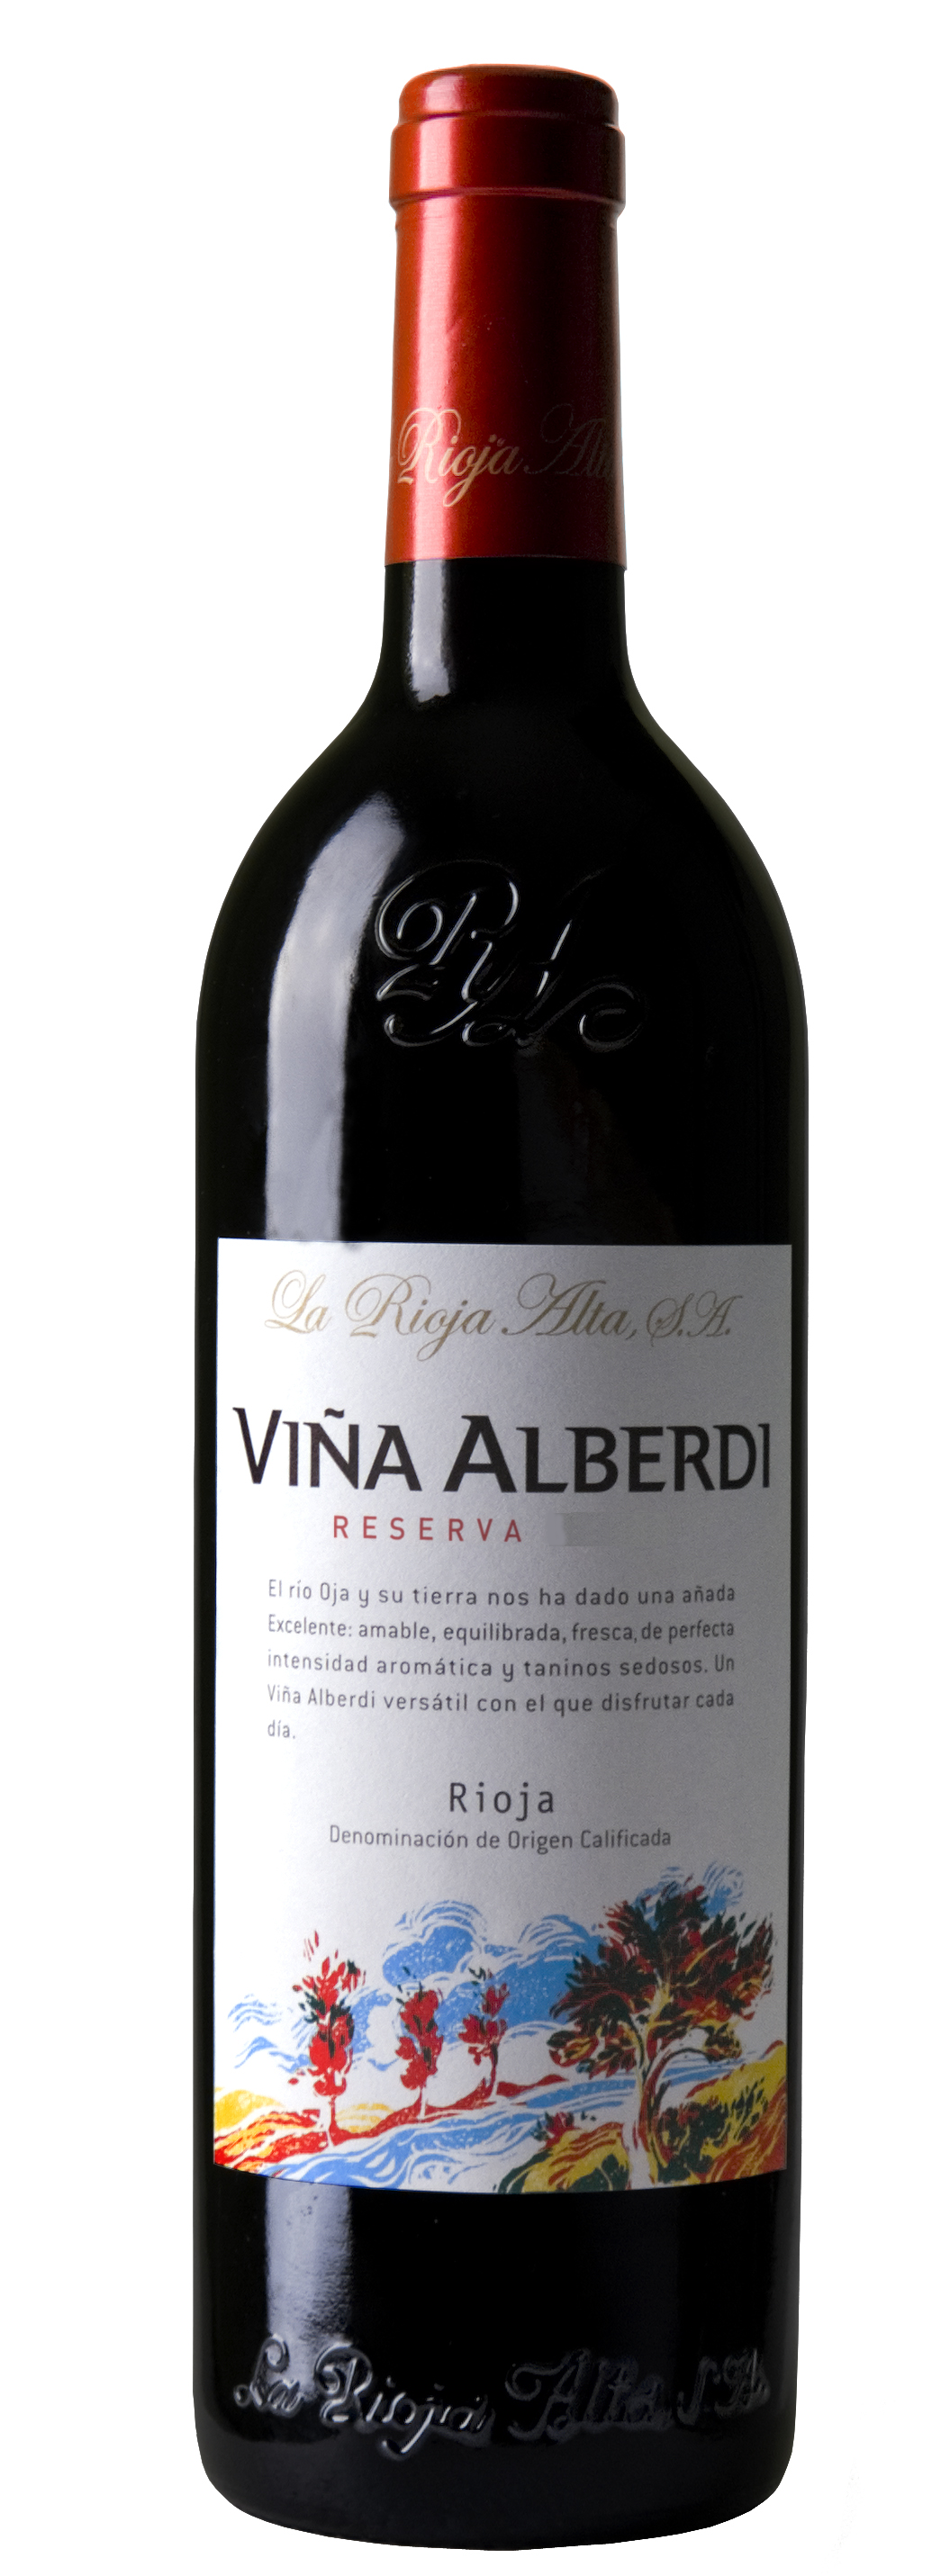 Image of product Viña Alberdi Reserva - promotion